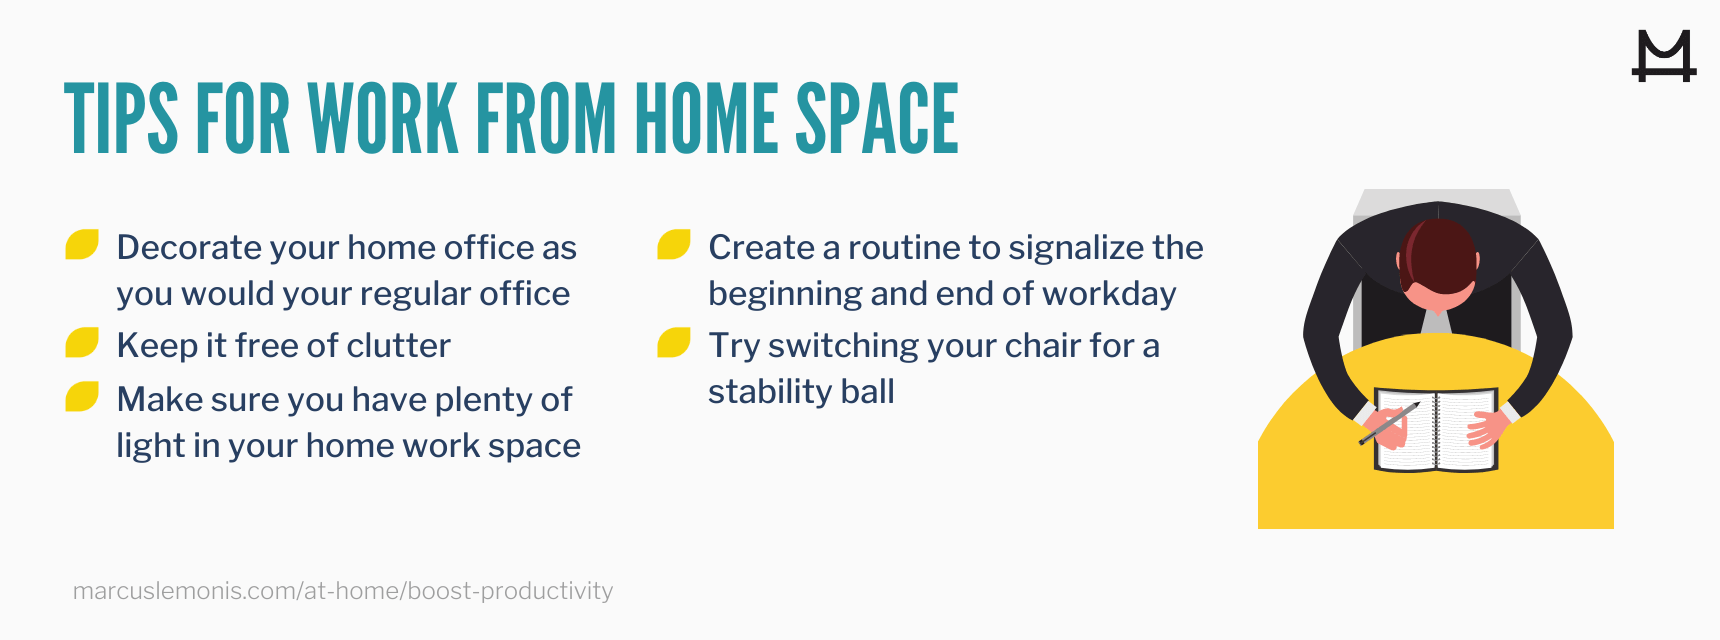 List of tips to help improve your work from home space